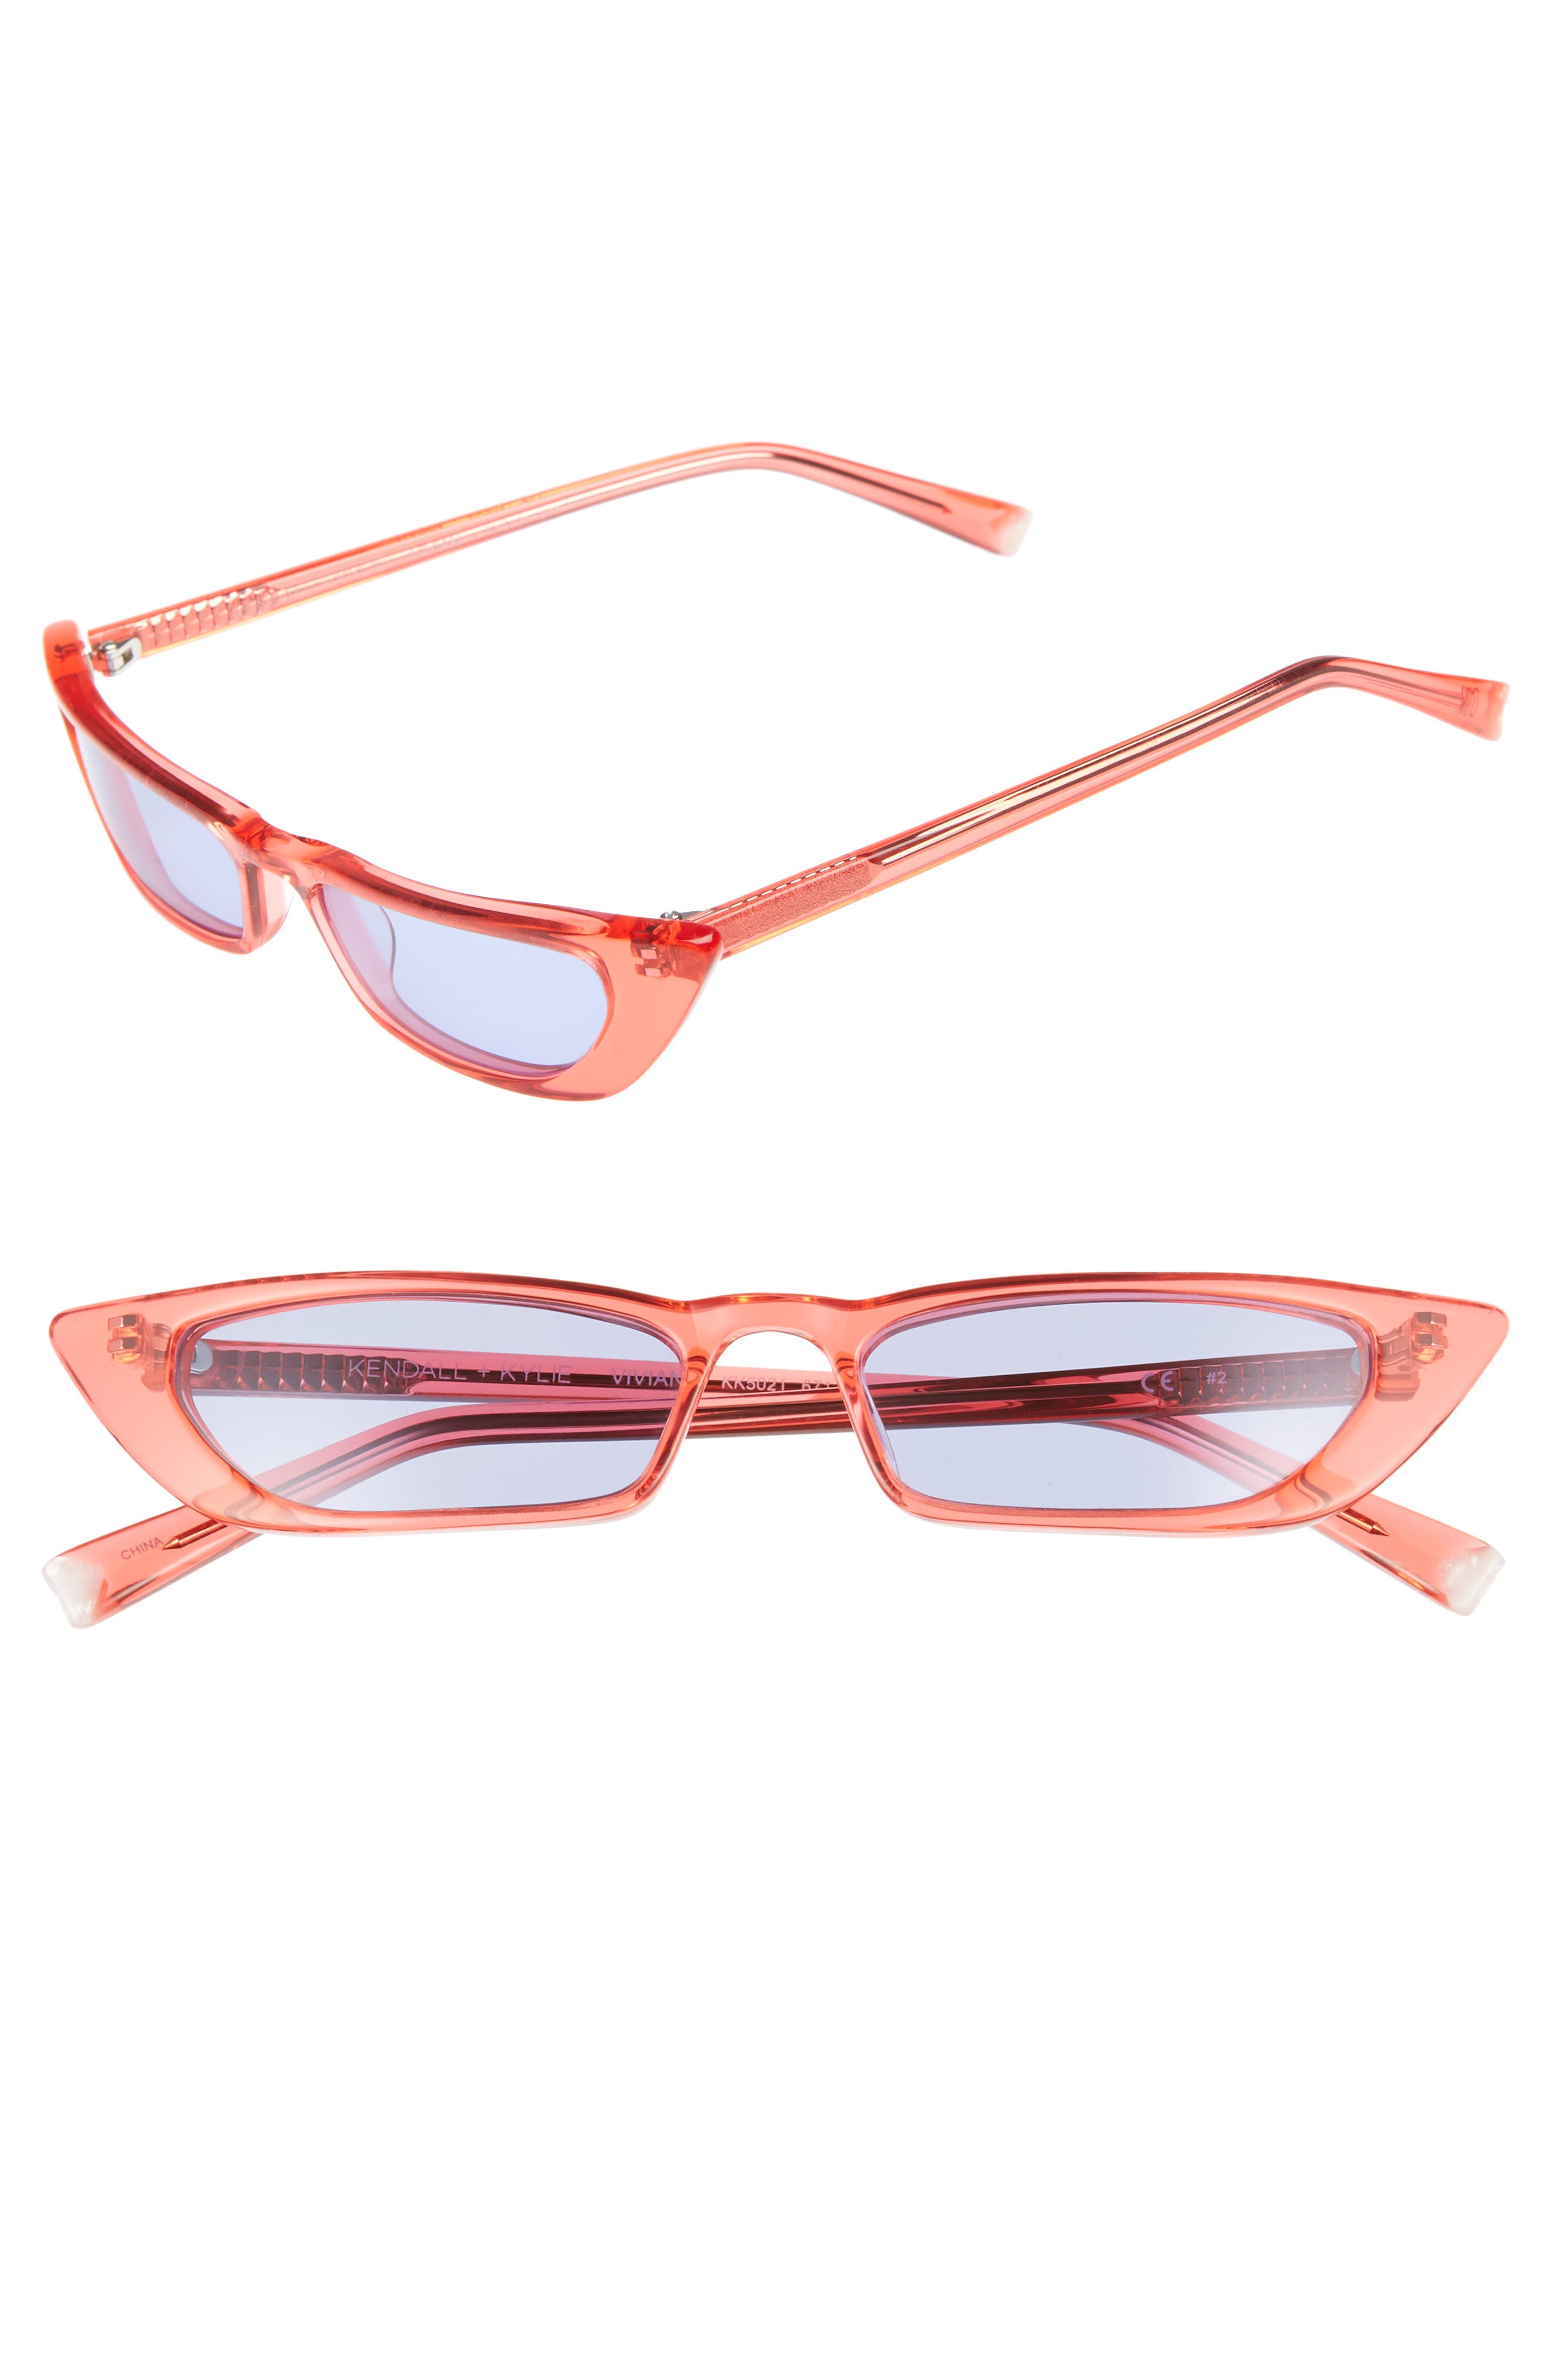 Kendall + Kylie Vivian 51Mm Extreme Cat Eye Sunglasses - Crystal Pink